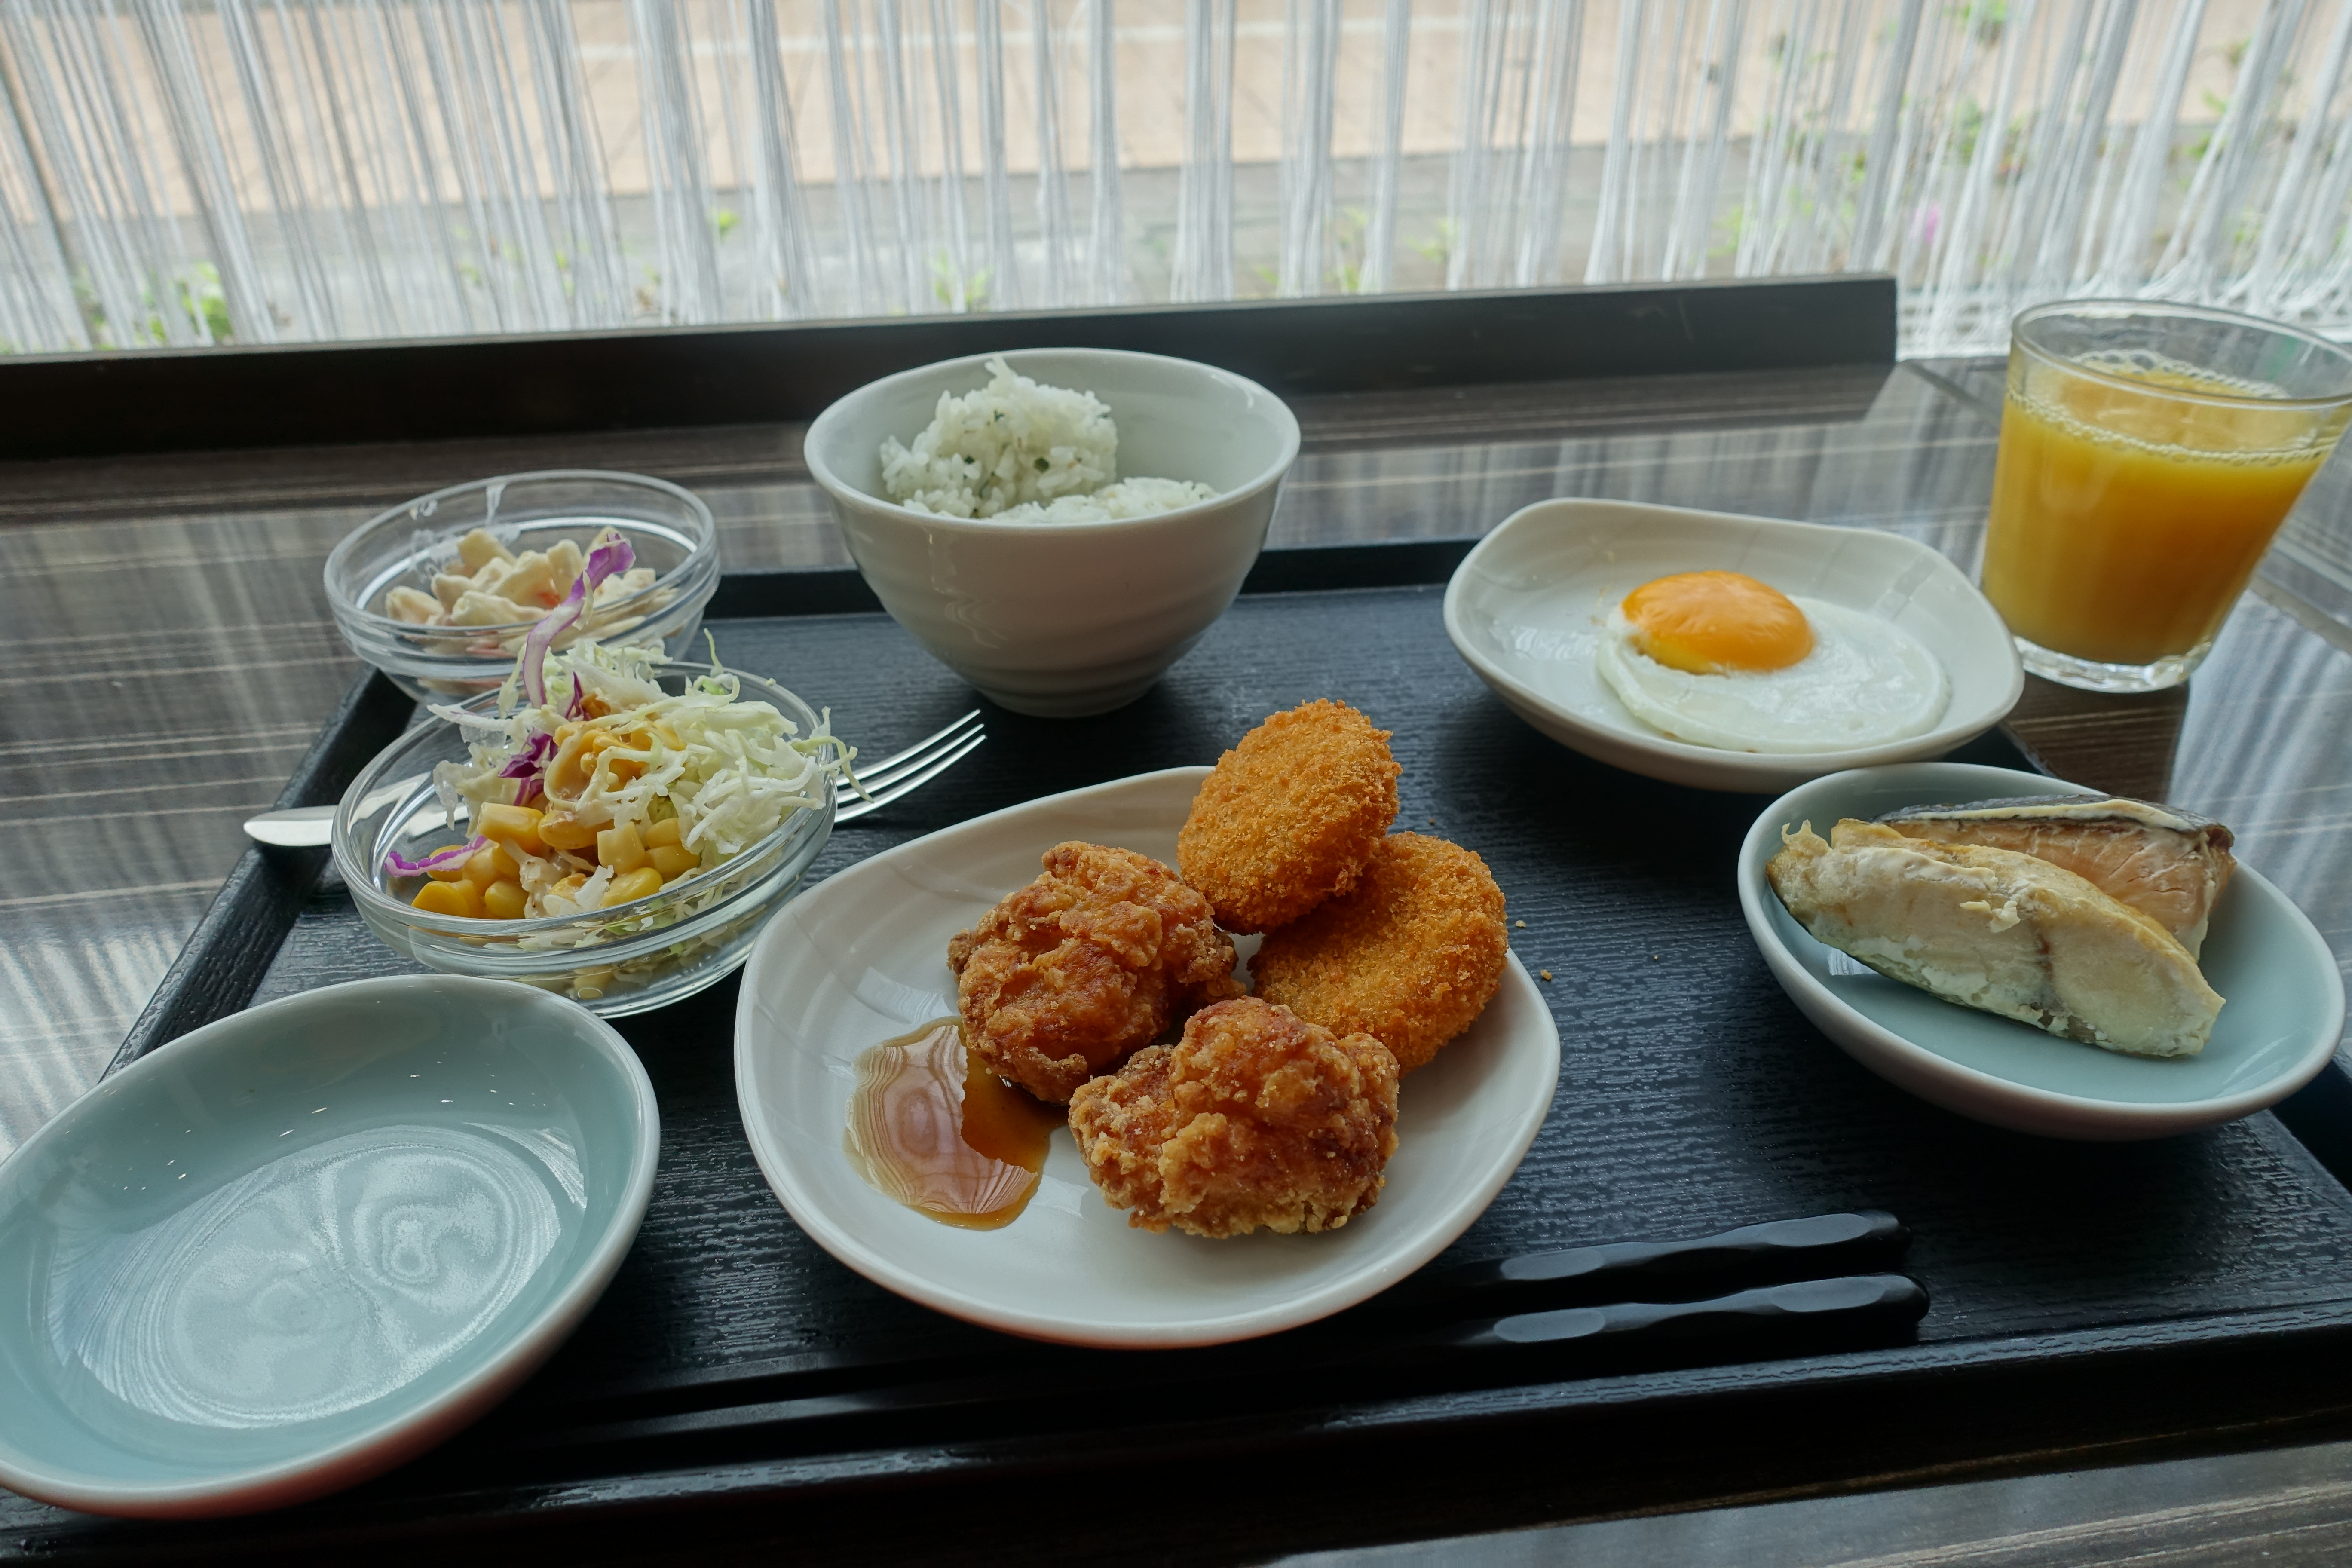 Fried chicken, salad, egg and fish